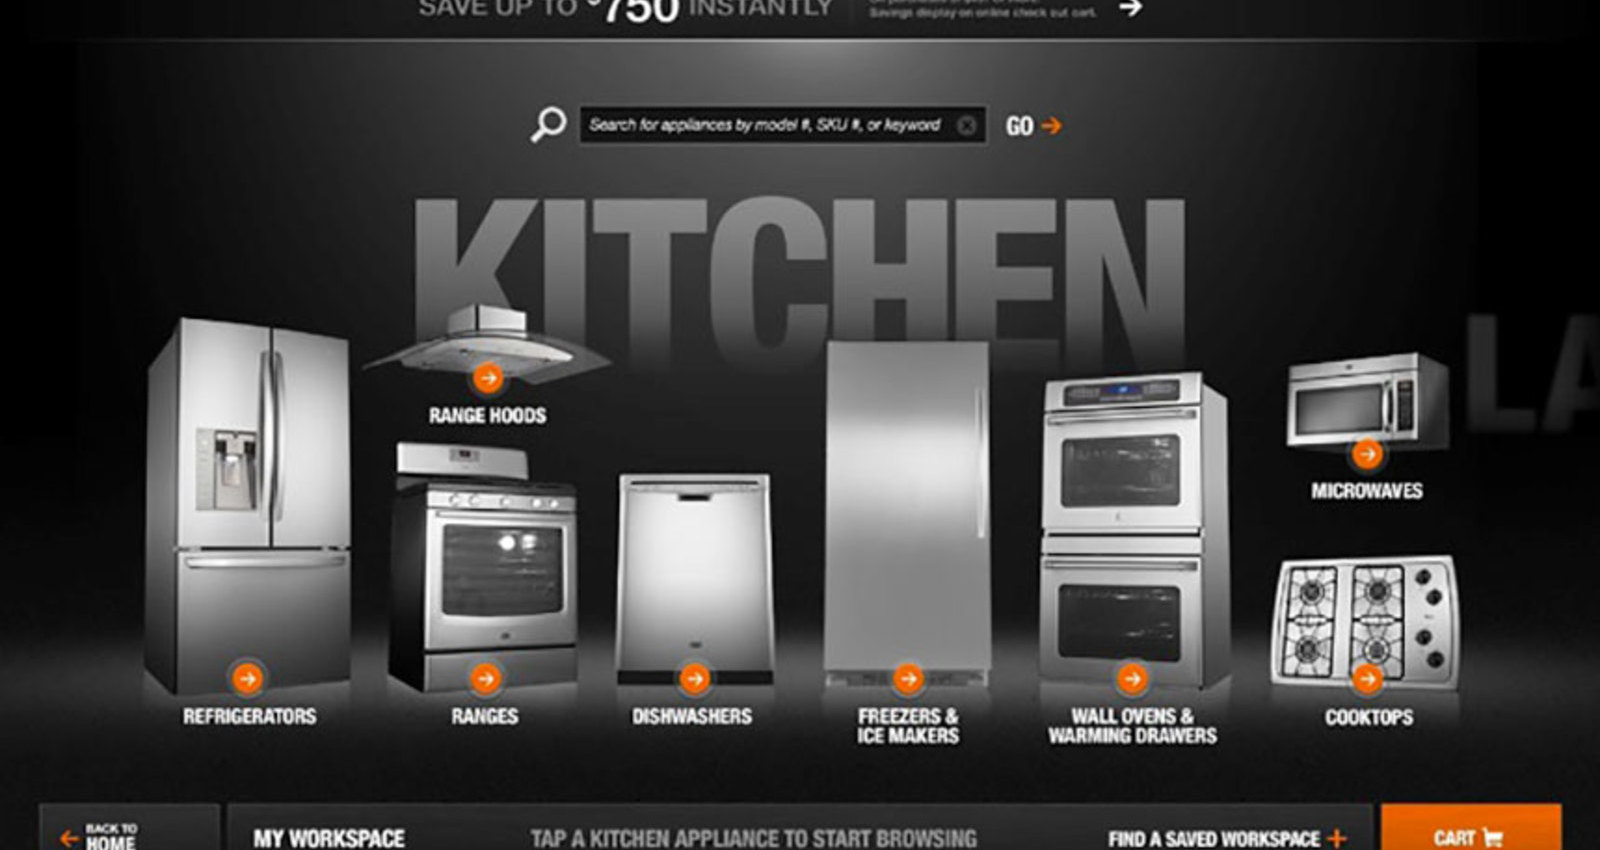 The Home Depot Appliance Experience